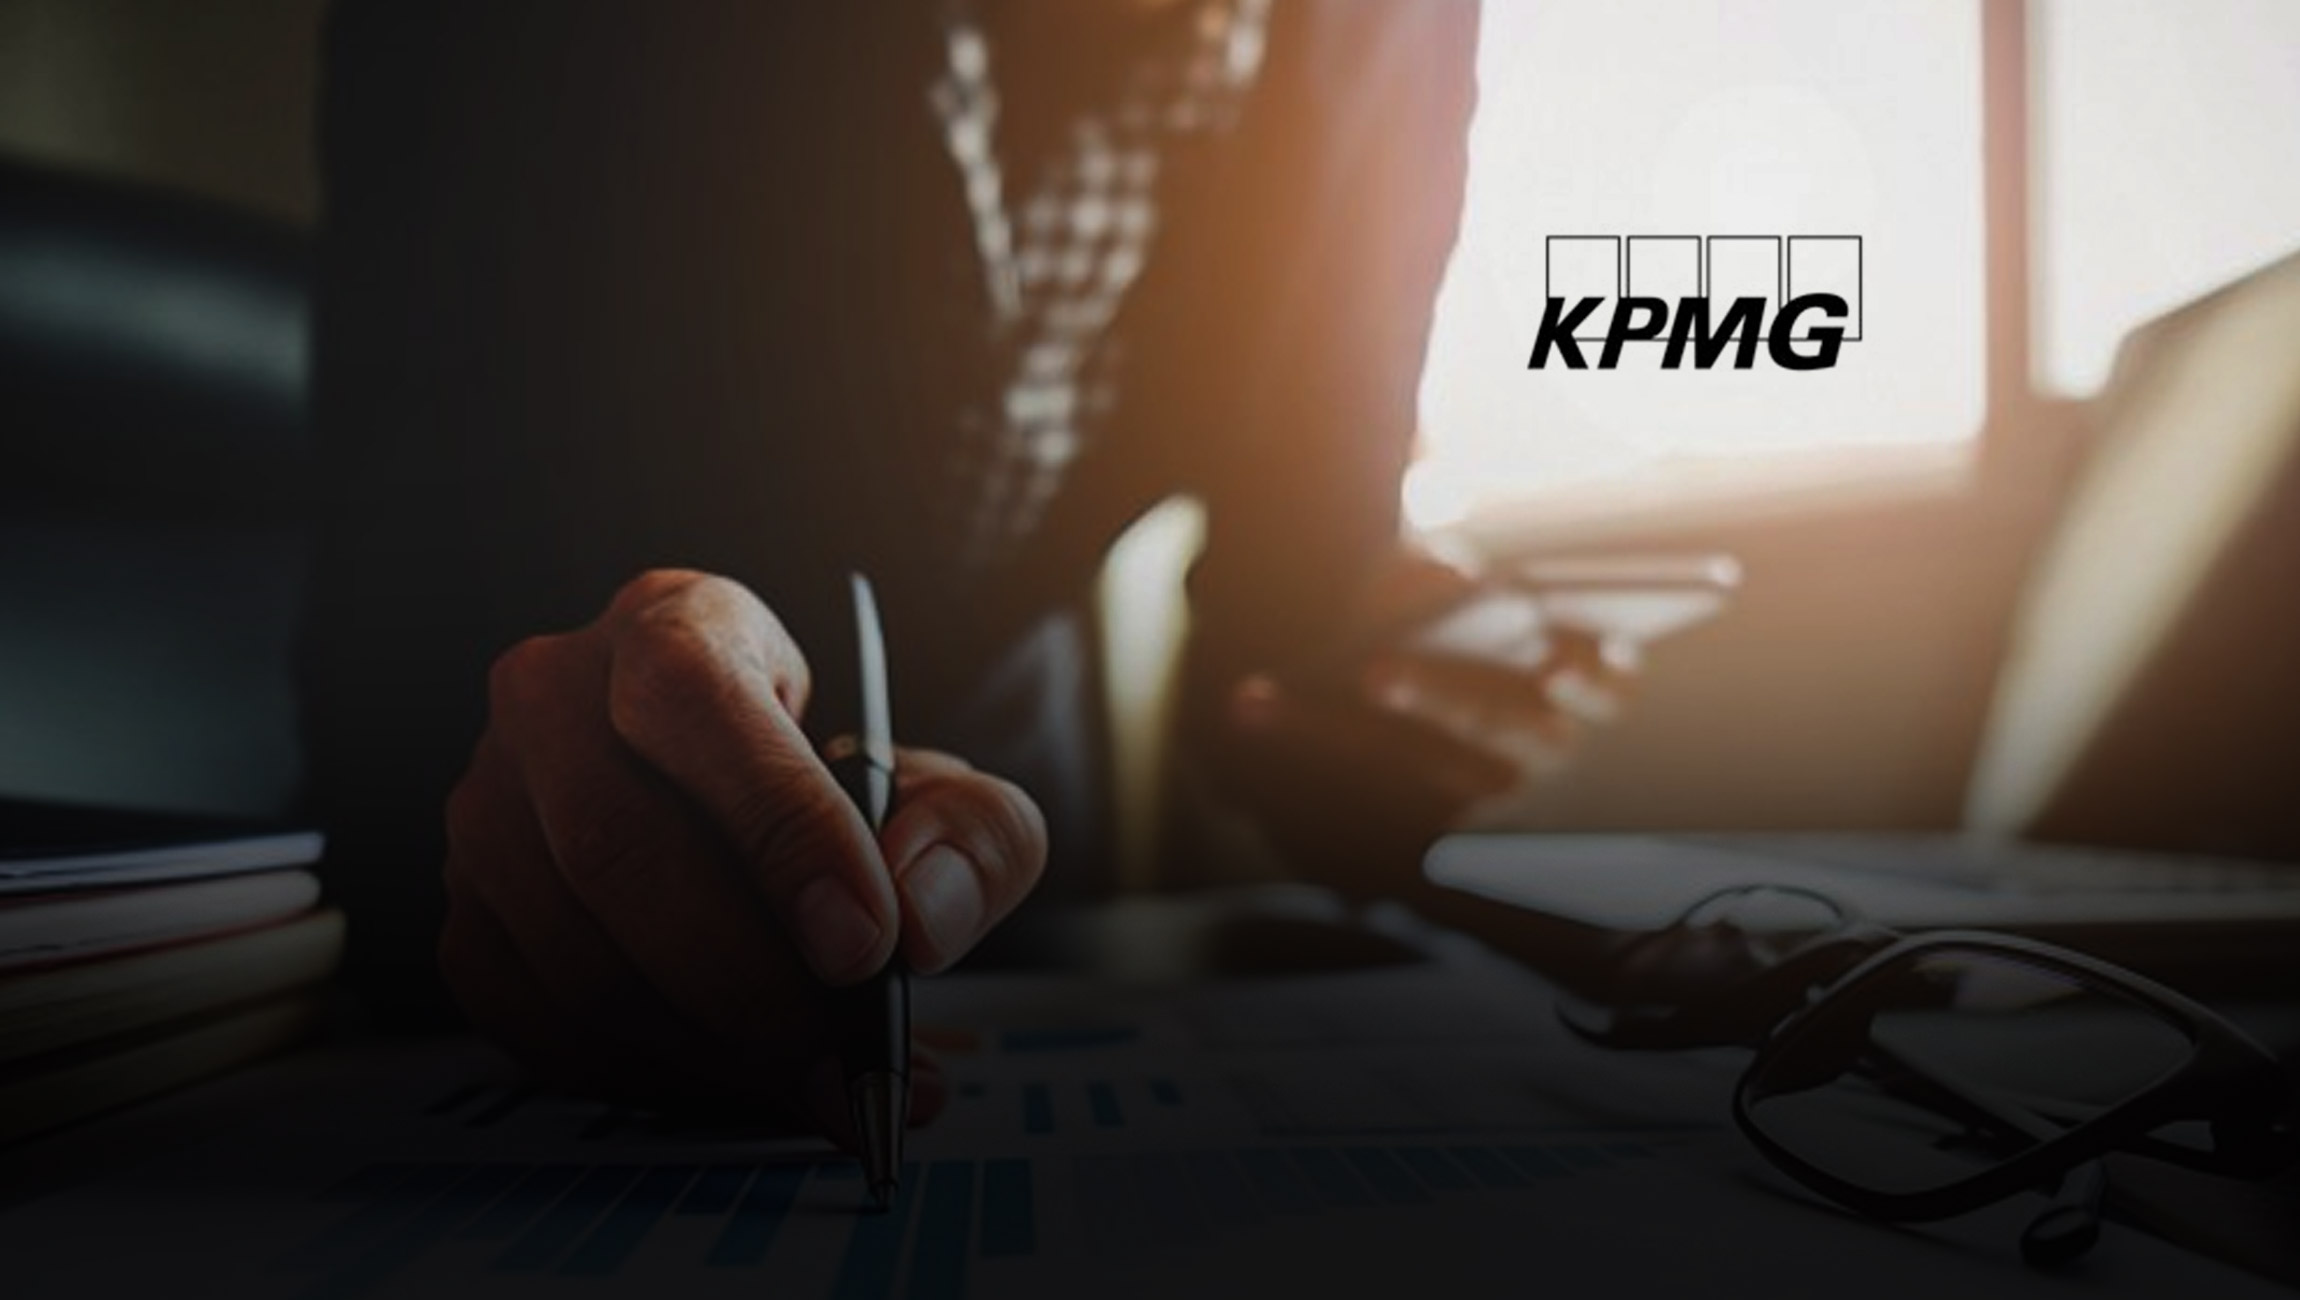 Most Tech Sector Leaders Believe Companies Should Have An Artificial Intelligence Ethics Policy: KPMG Report